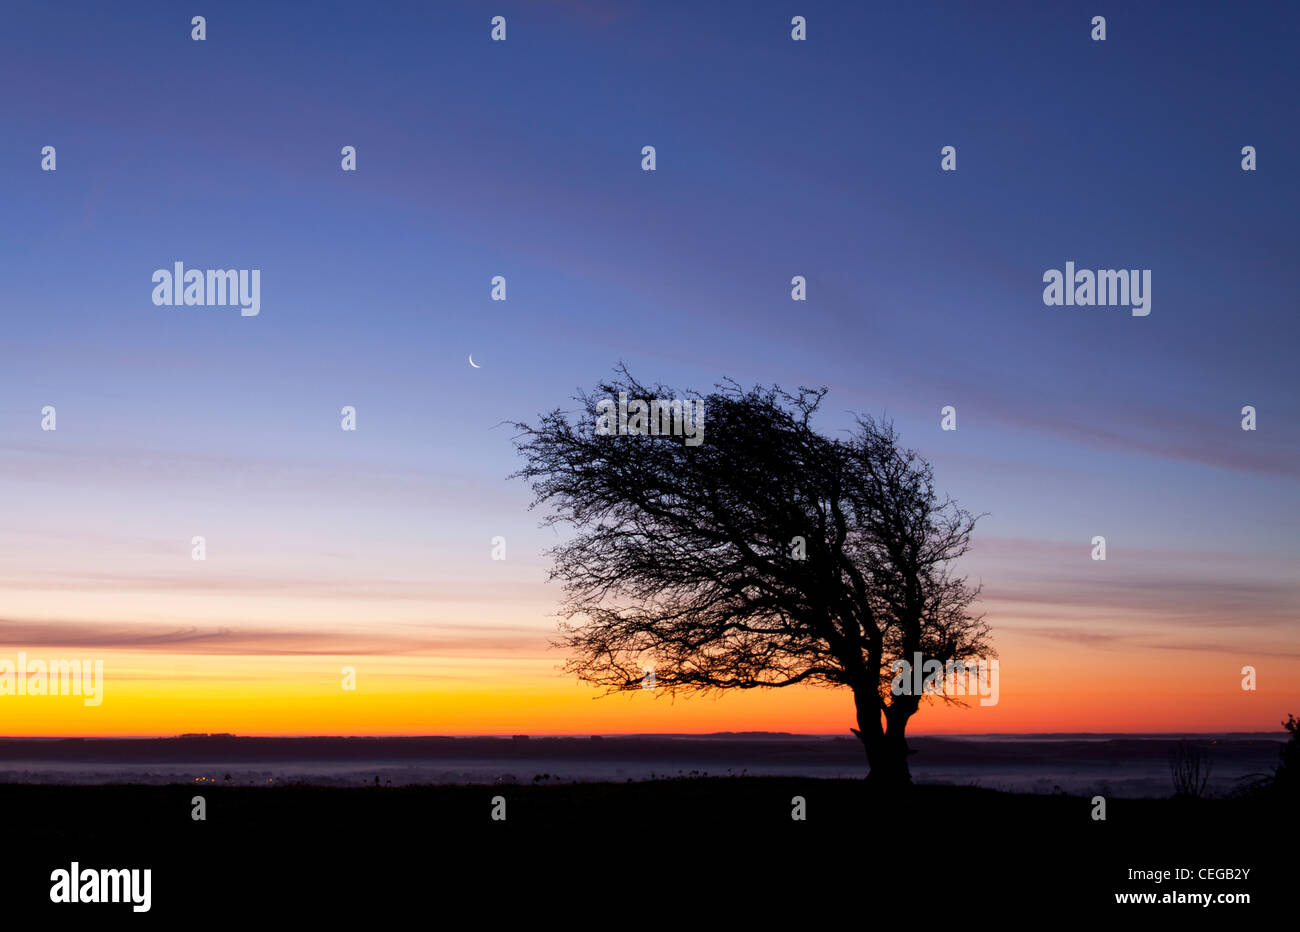 A windswept hawthorn tree photographed at sunrise on Golden Ball Hill near Pewsey in Wiltshire. - Stock Image